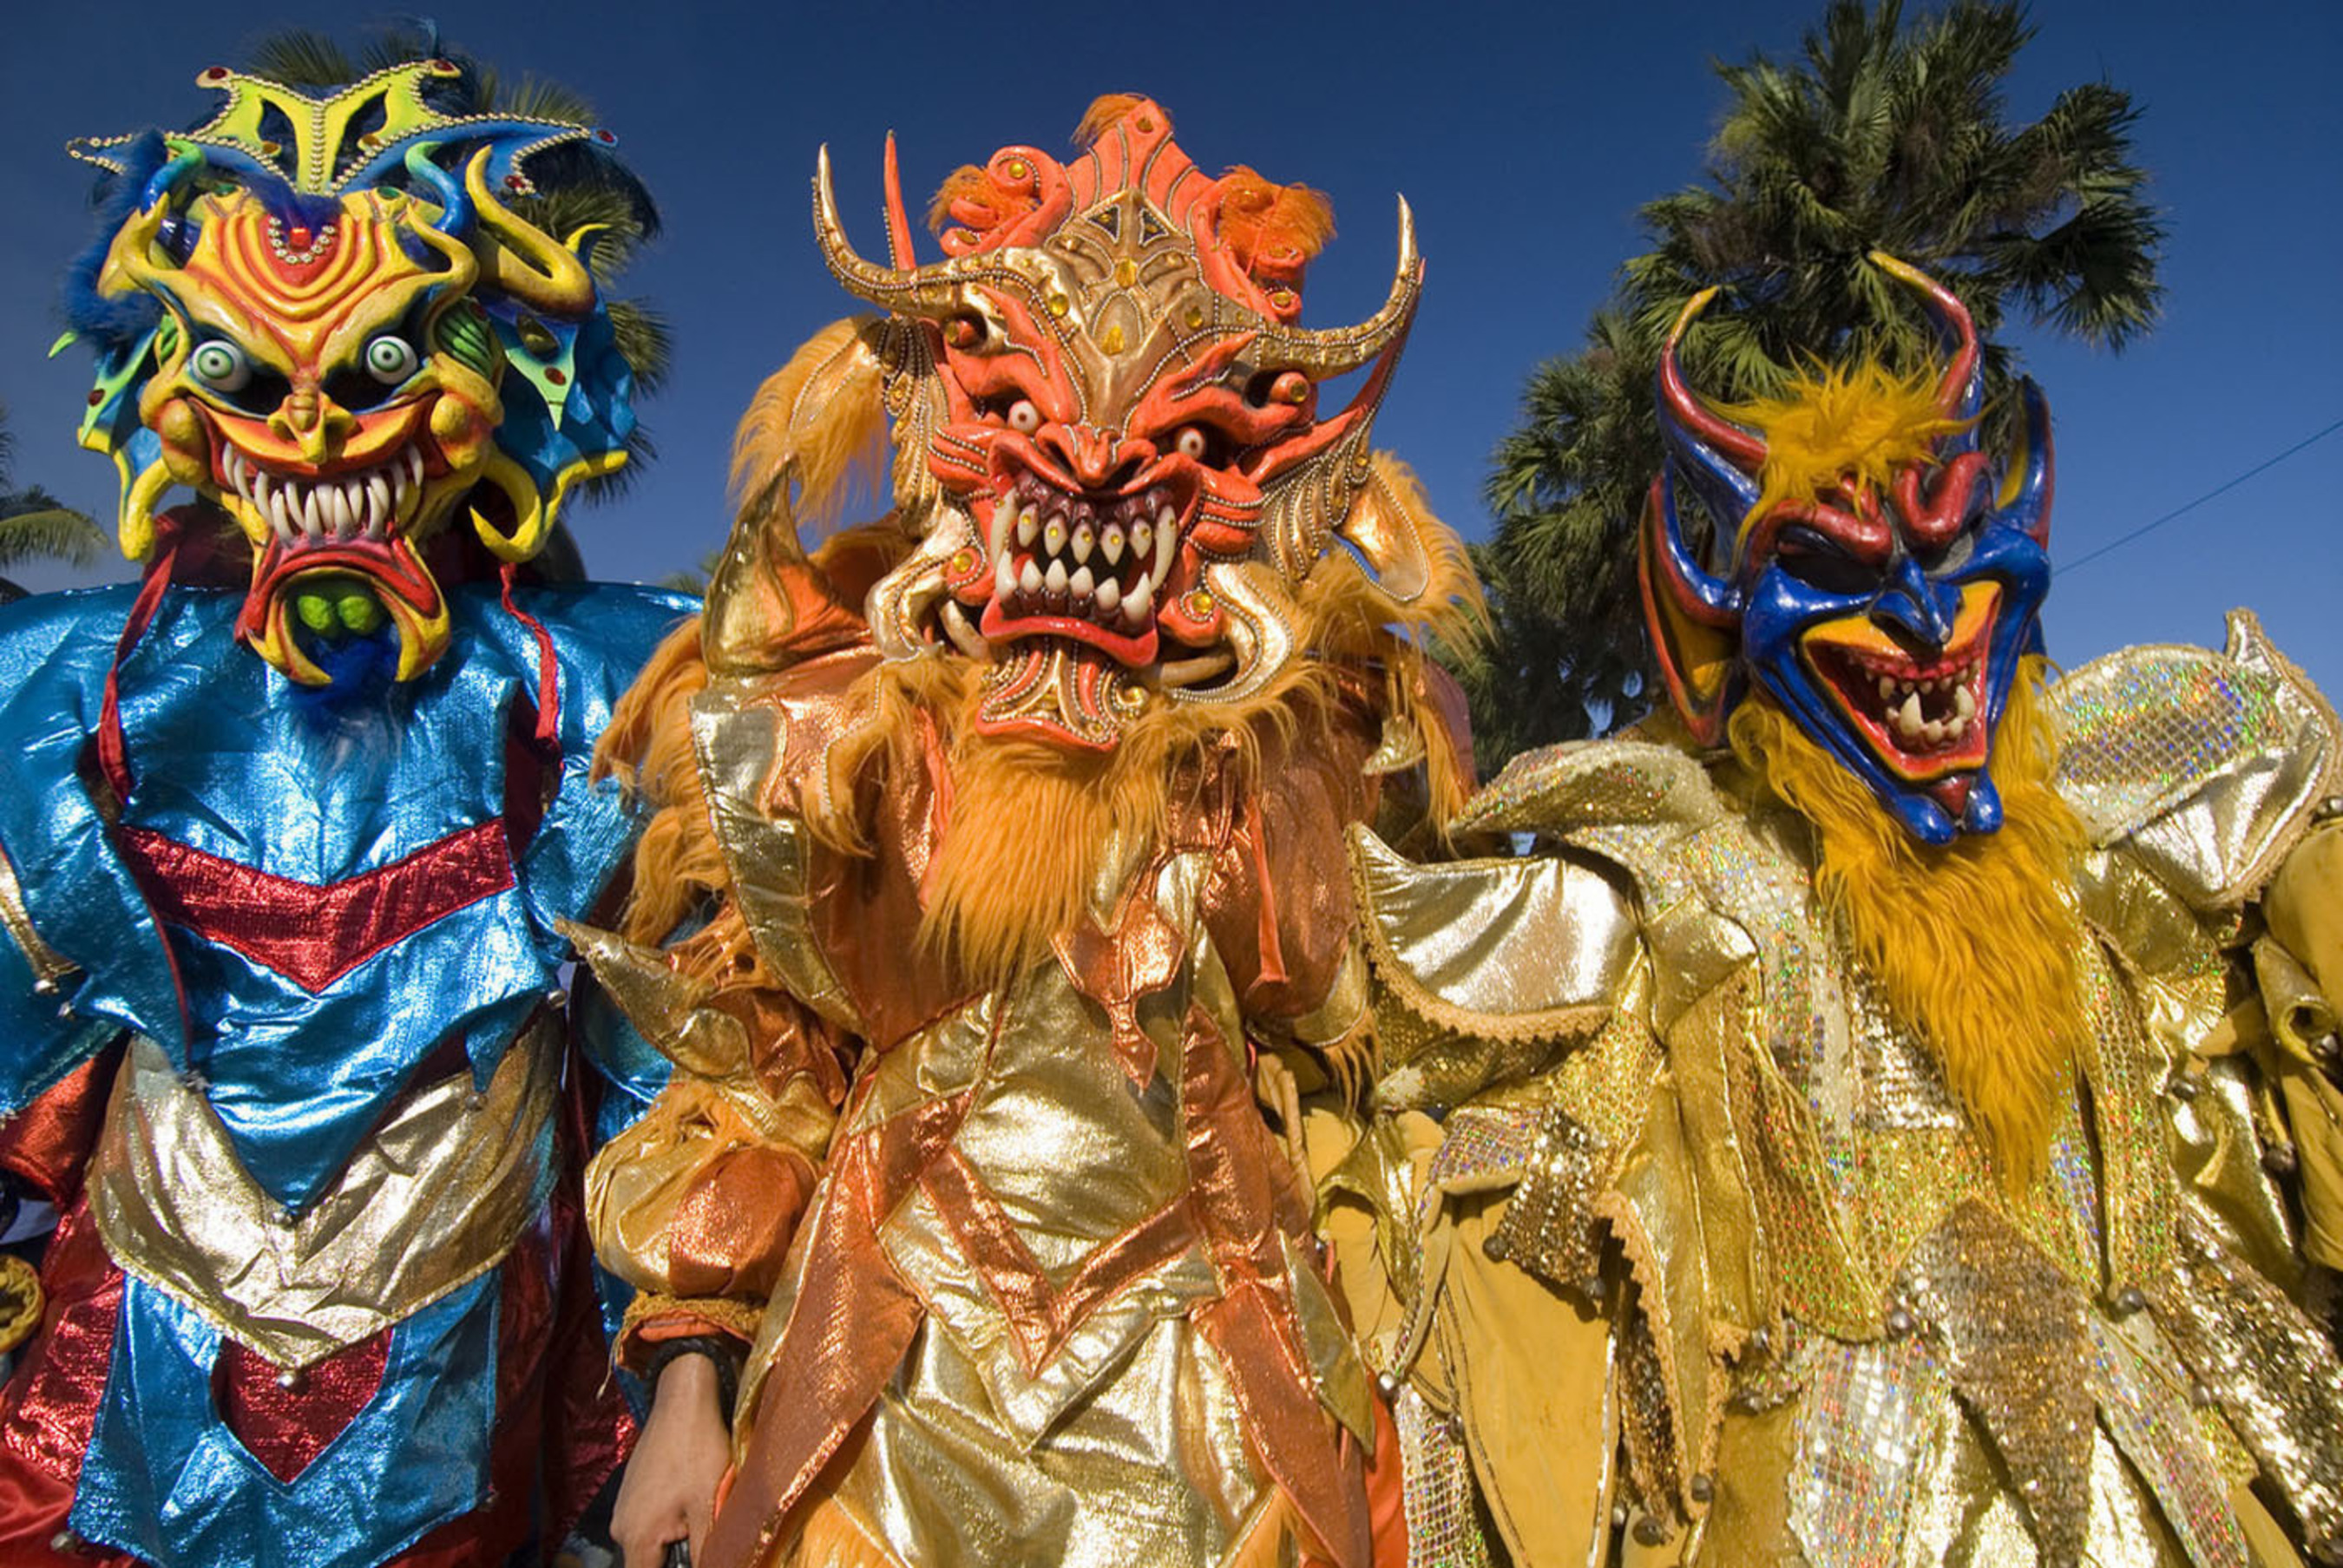 Come celebrate Dominican Republic's Carnival with us, where costumed devils, Merengue and joy abound.  (PRNewsFoto/Dominican Republic Ministry of Tourism)